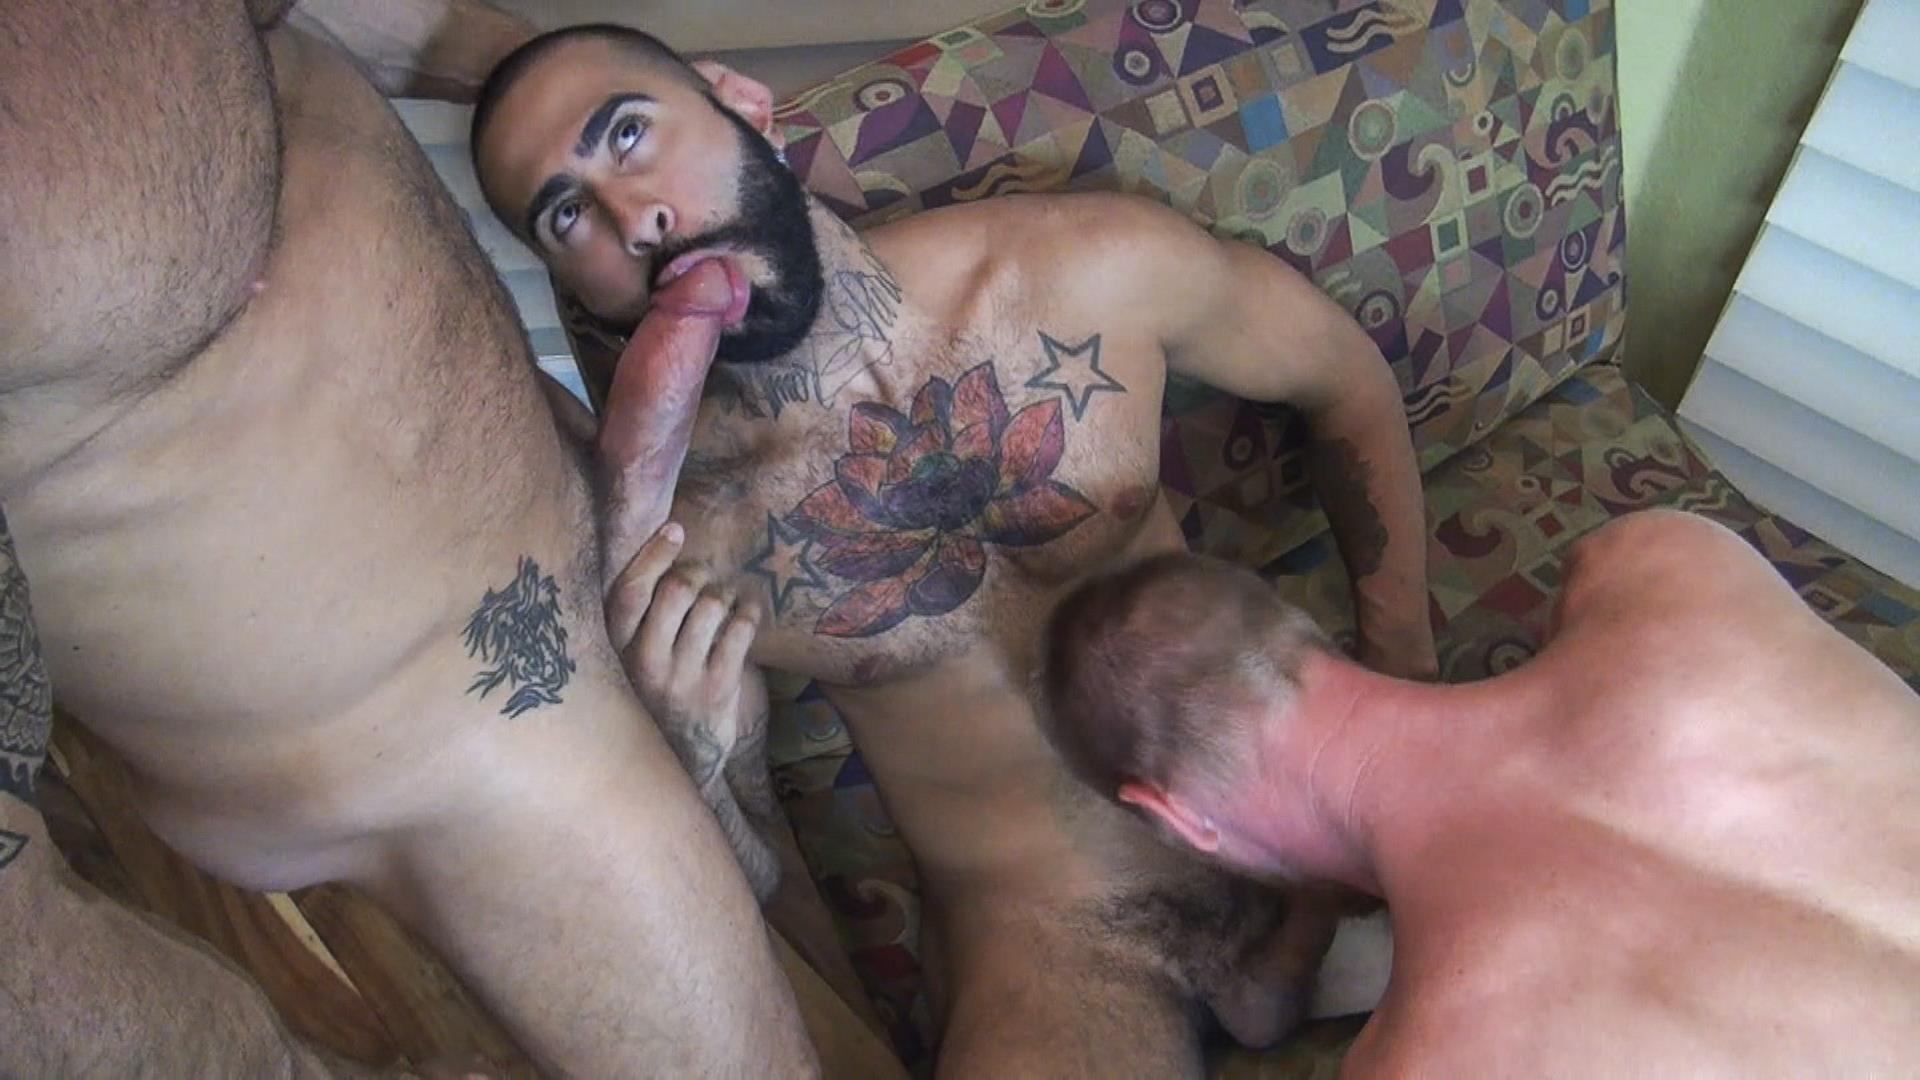 Lewd interracial gay guys hard fucking